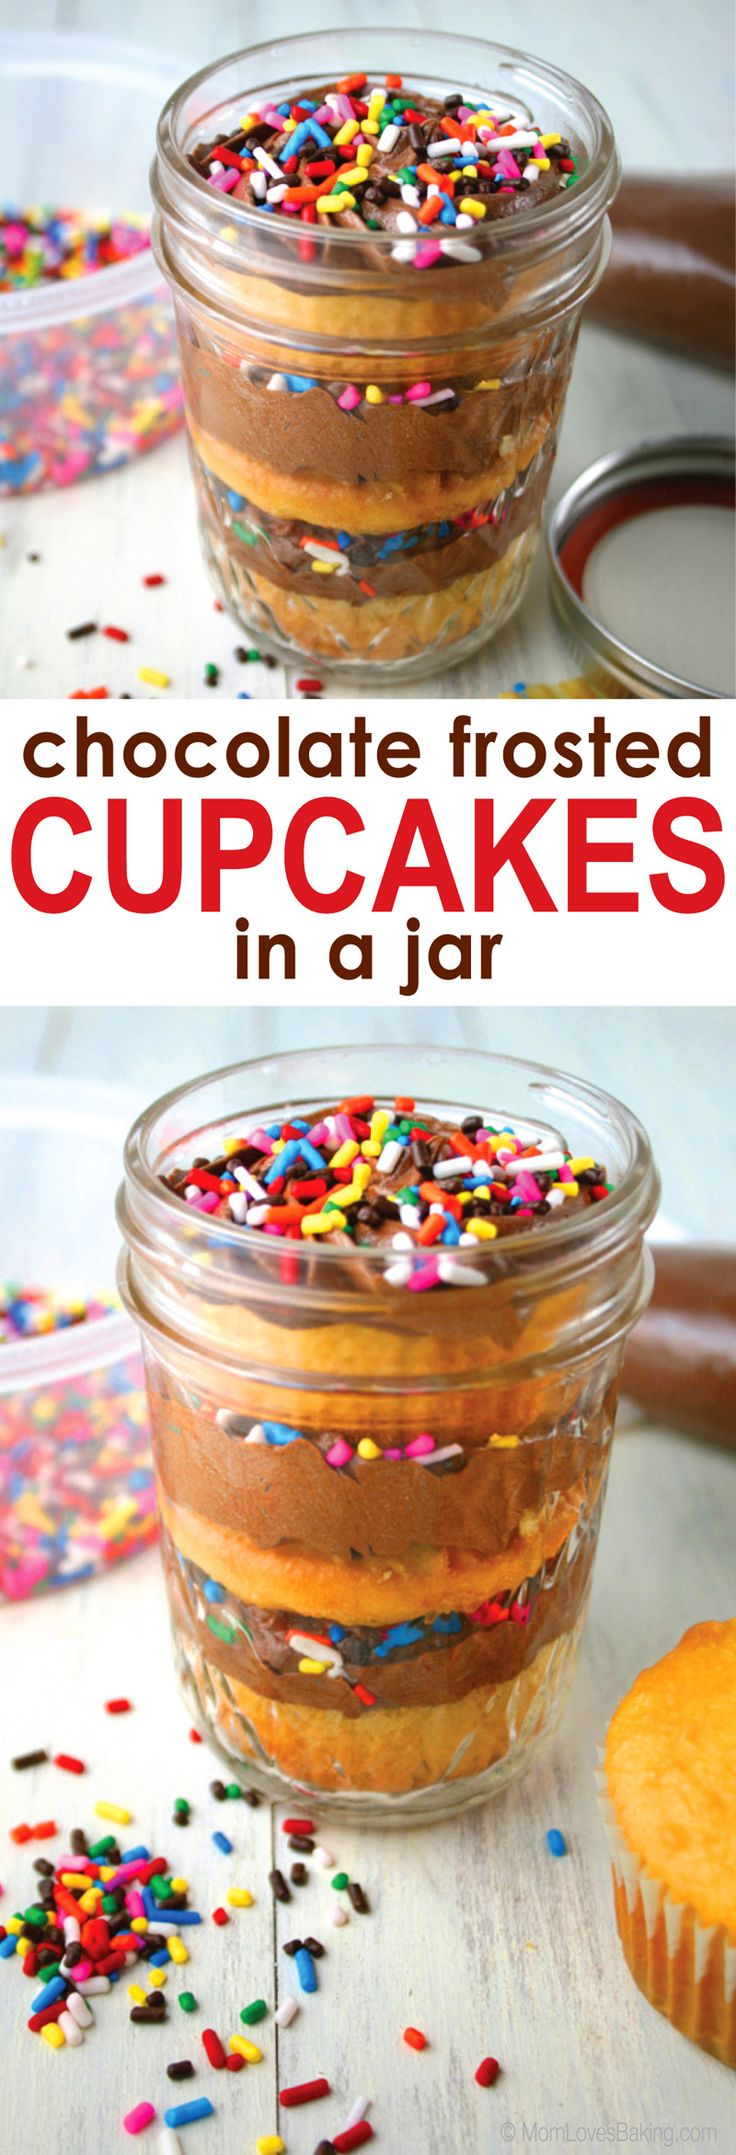 how to make cake in a jar with frosting